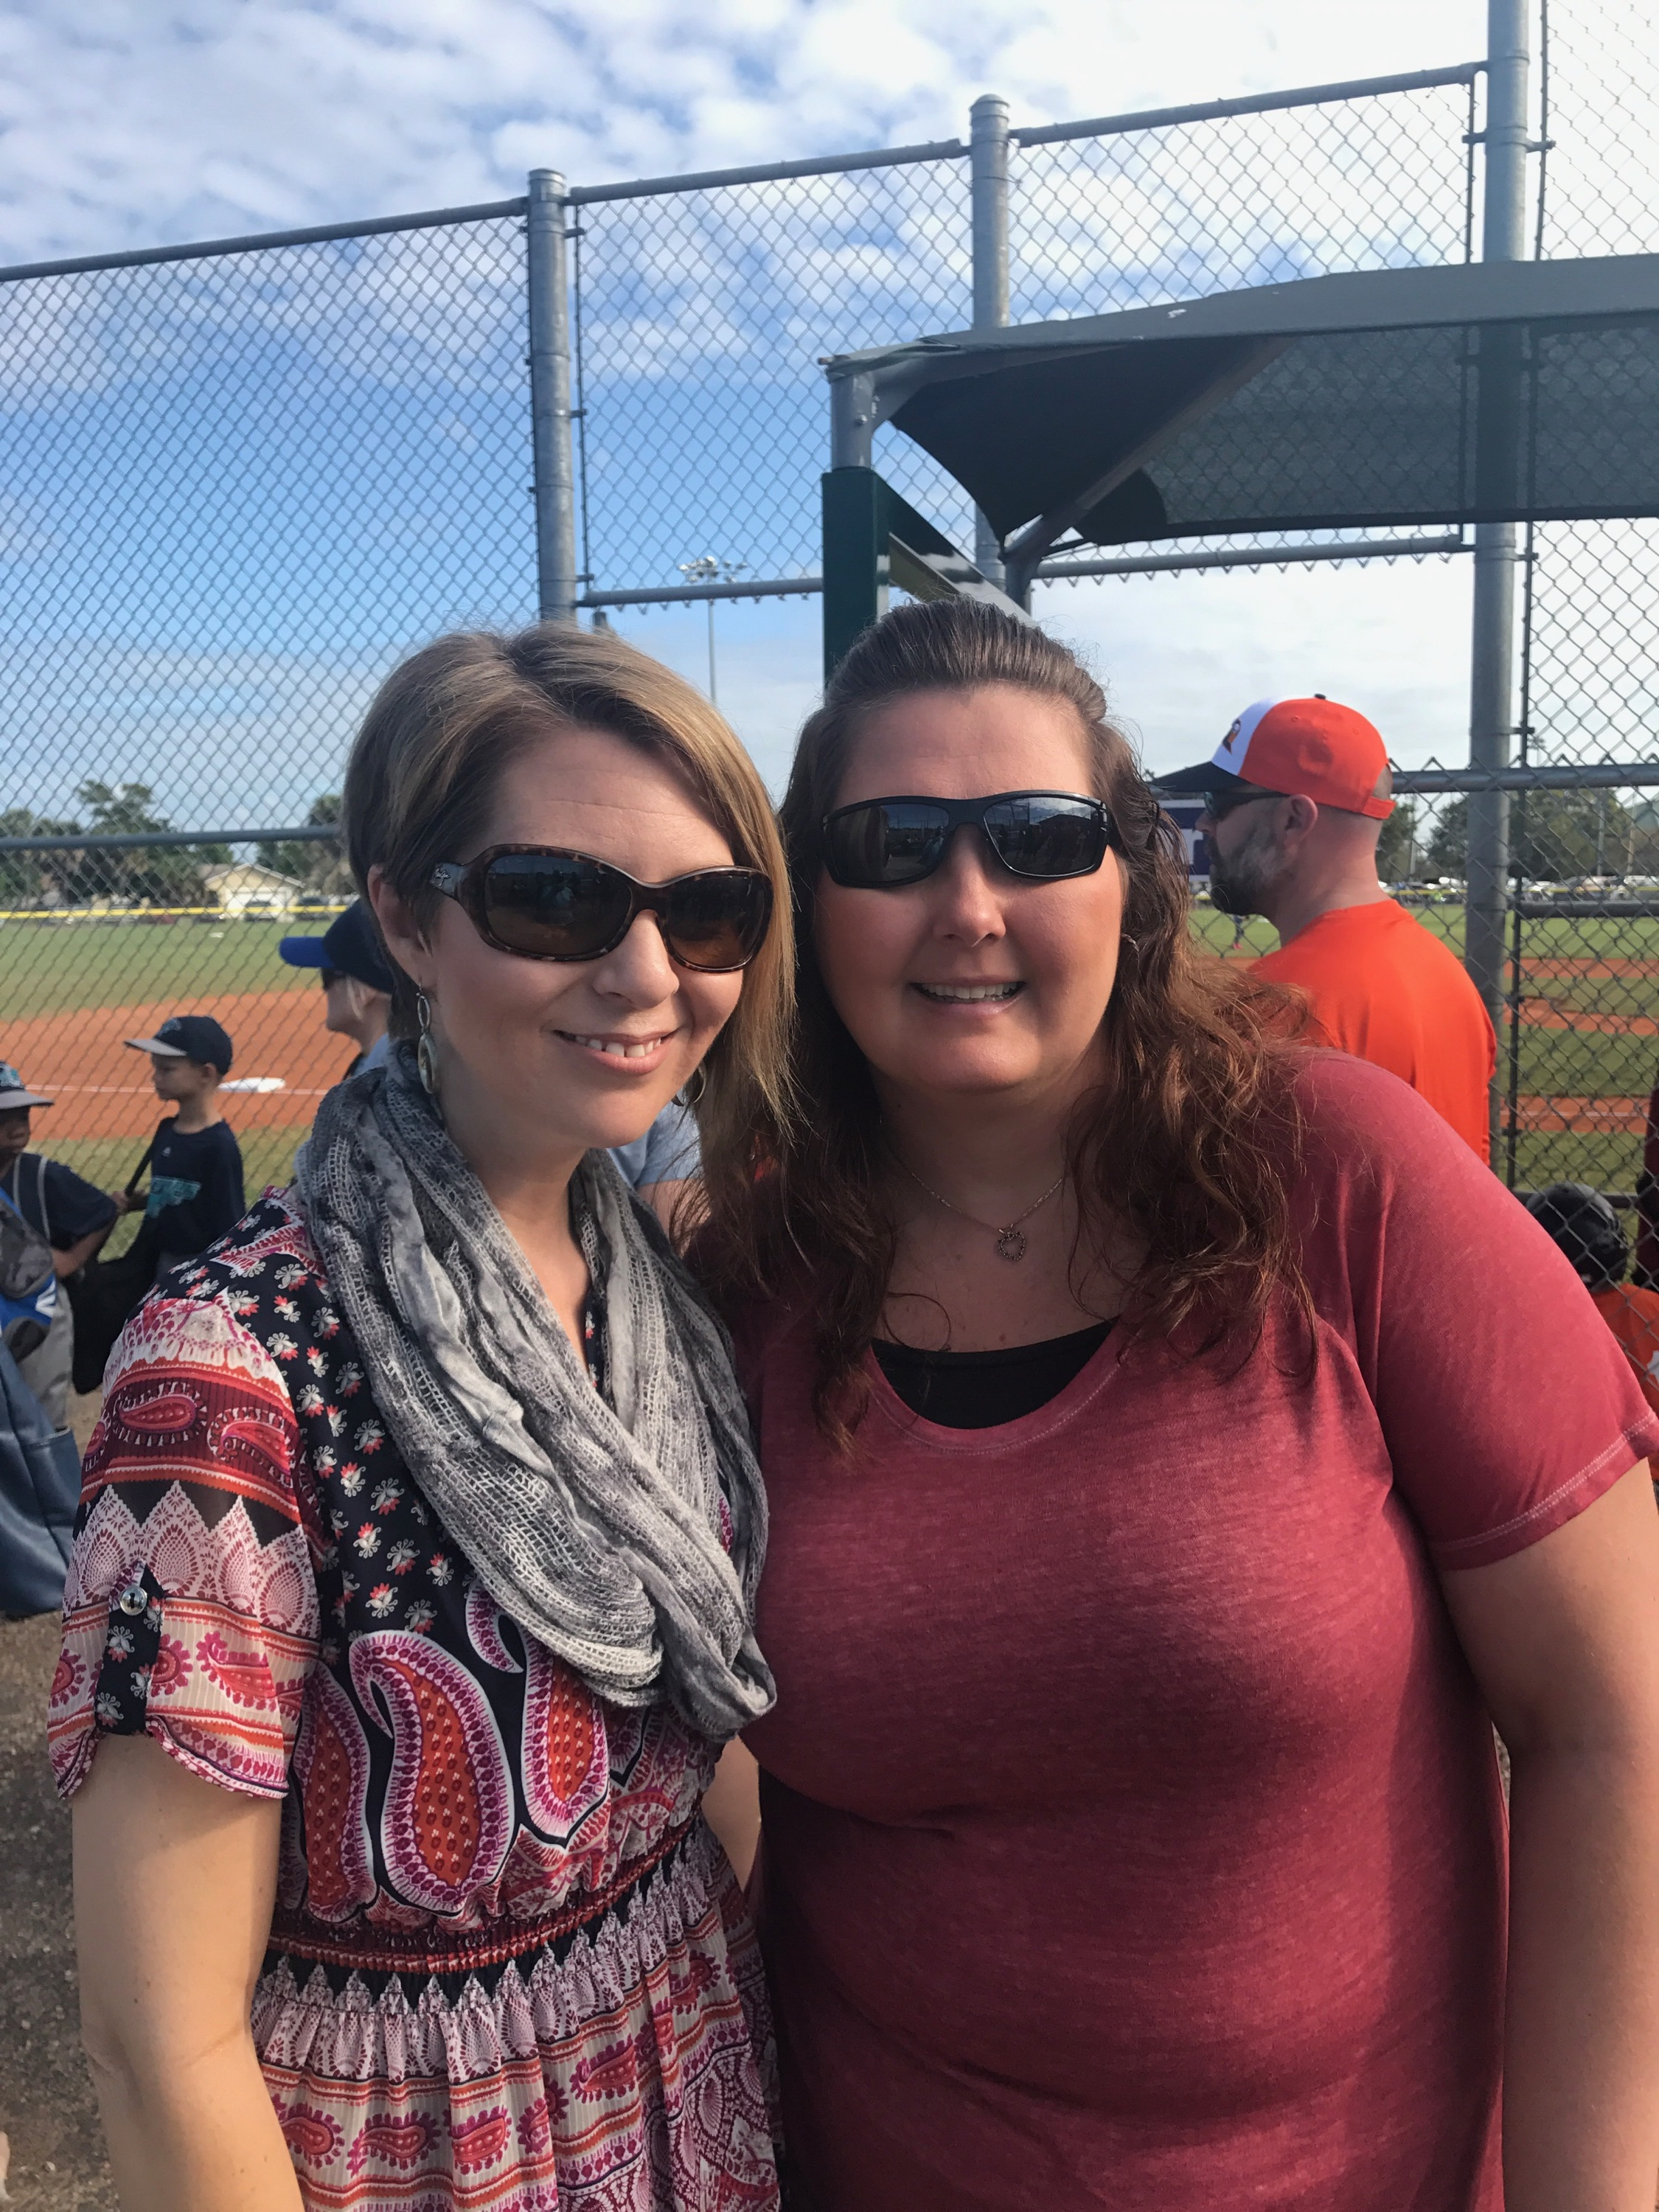 Erica Castner and Liz Nyce. Liz was Erica's first boss in Florida and invited Erica to sing the National Anthem at her son's baseball season kick-off in Cape Coral, FL on February 24, 2018.